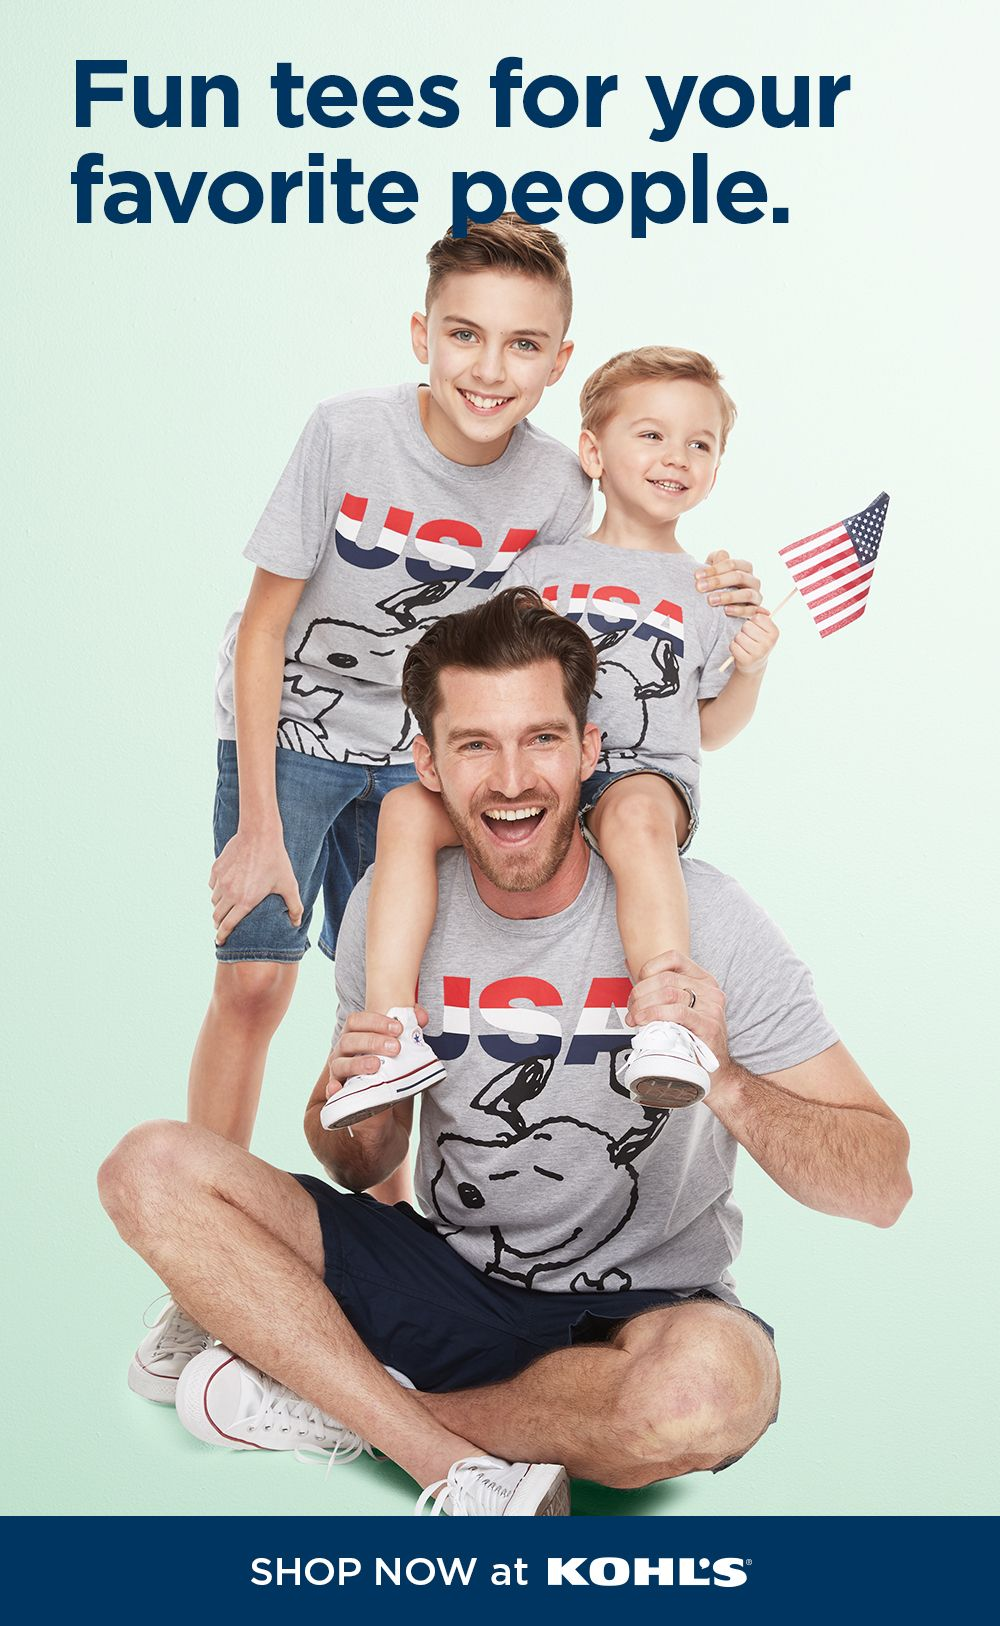 Find striped Snoopy Peanuts tees for the family at Kohl's